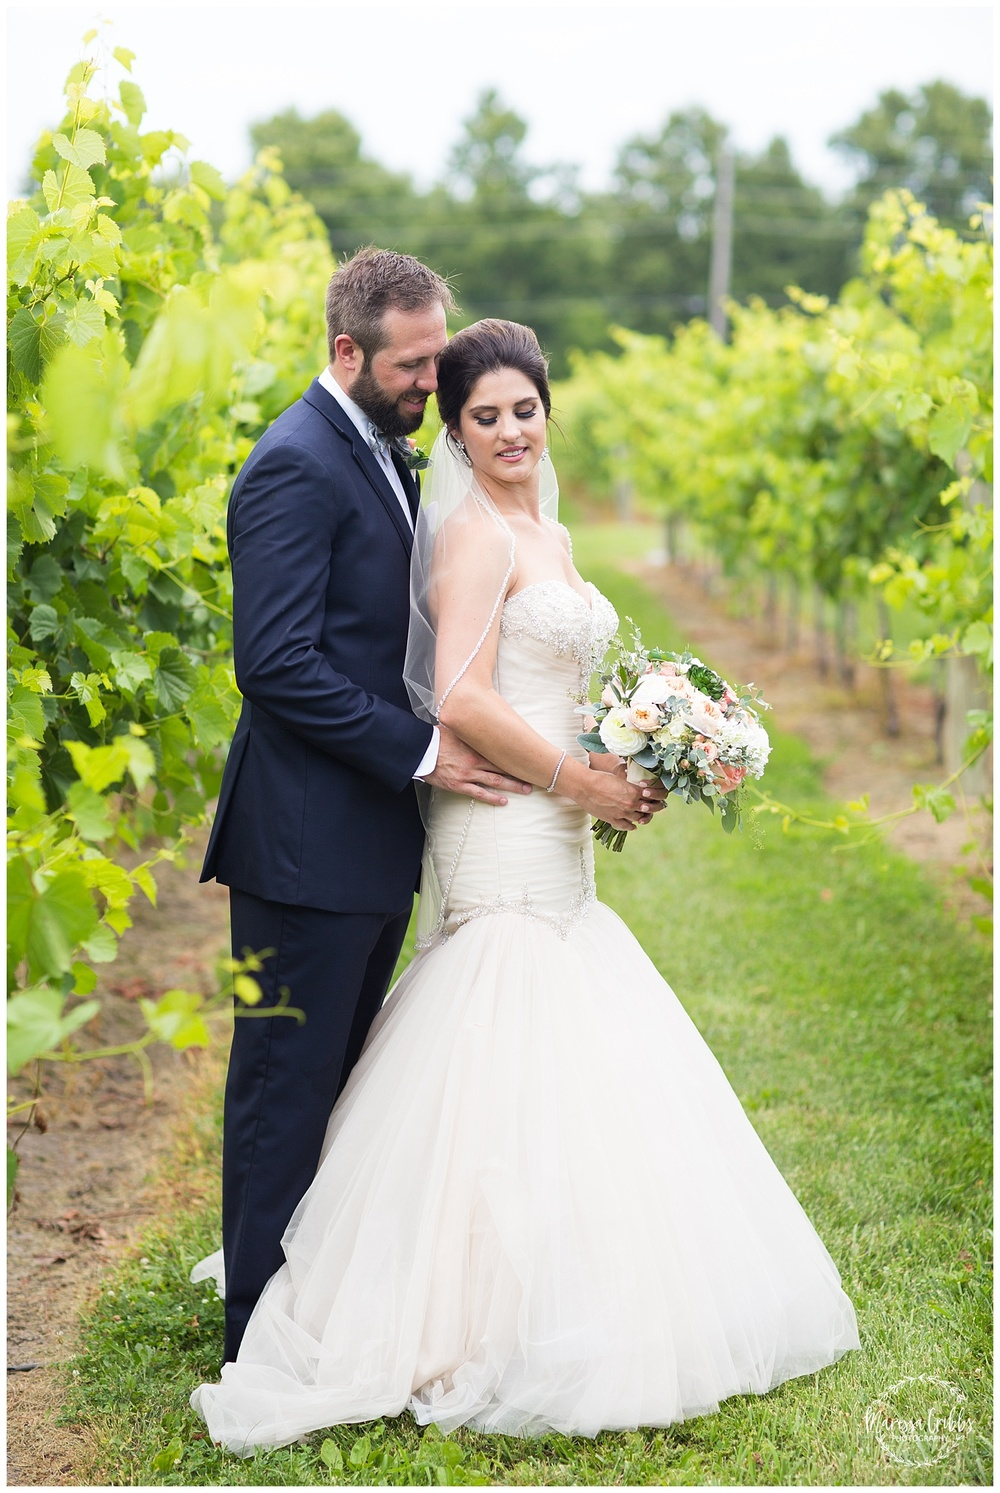 Stonehaus Winery Wedding | KC Wedding Photographer | Marissa Cribbs Photography | The Pavilion Event Space_0373.jpg